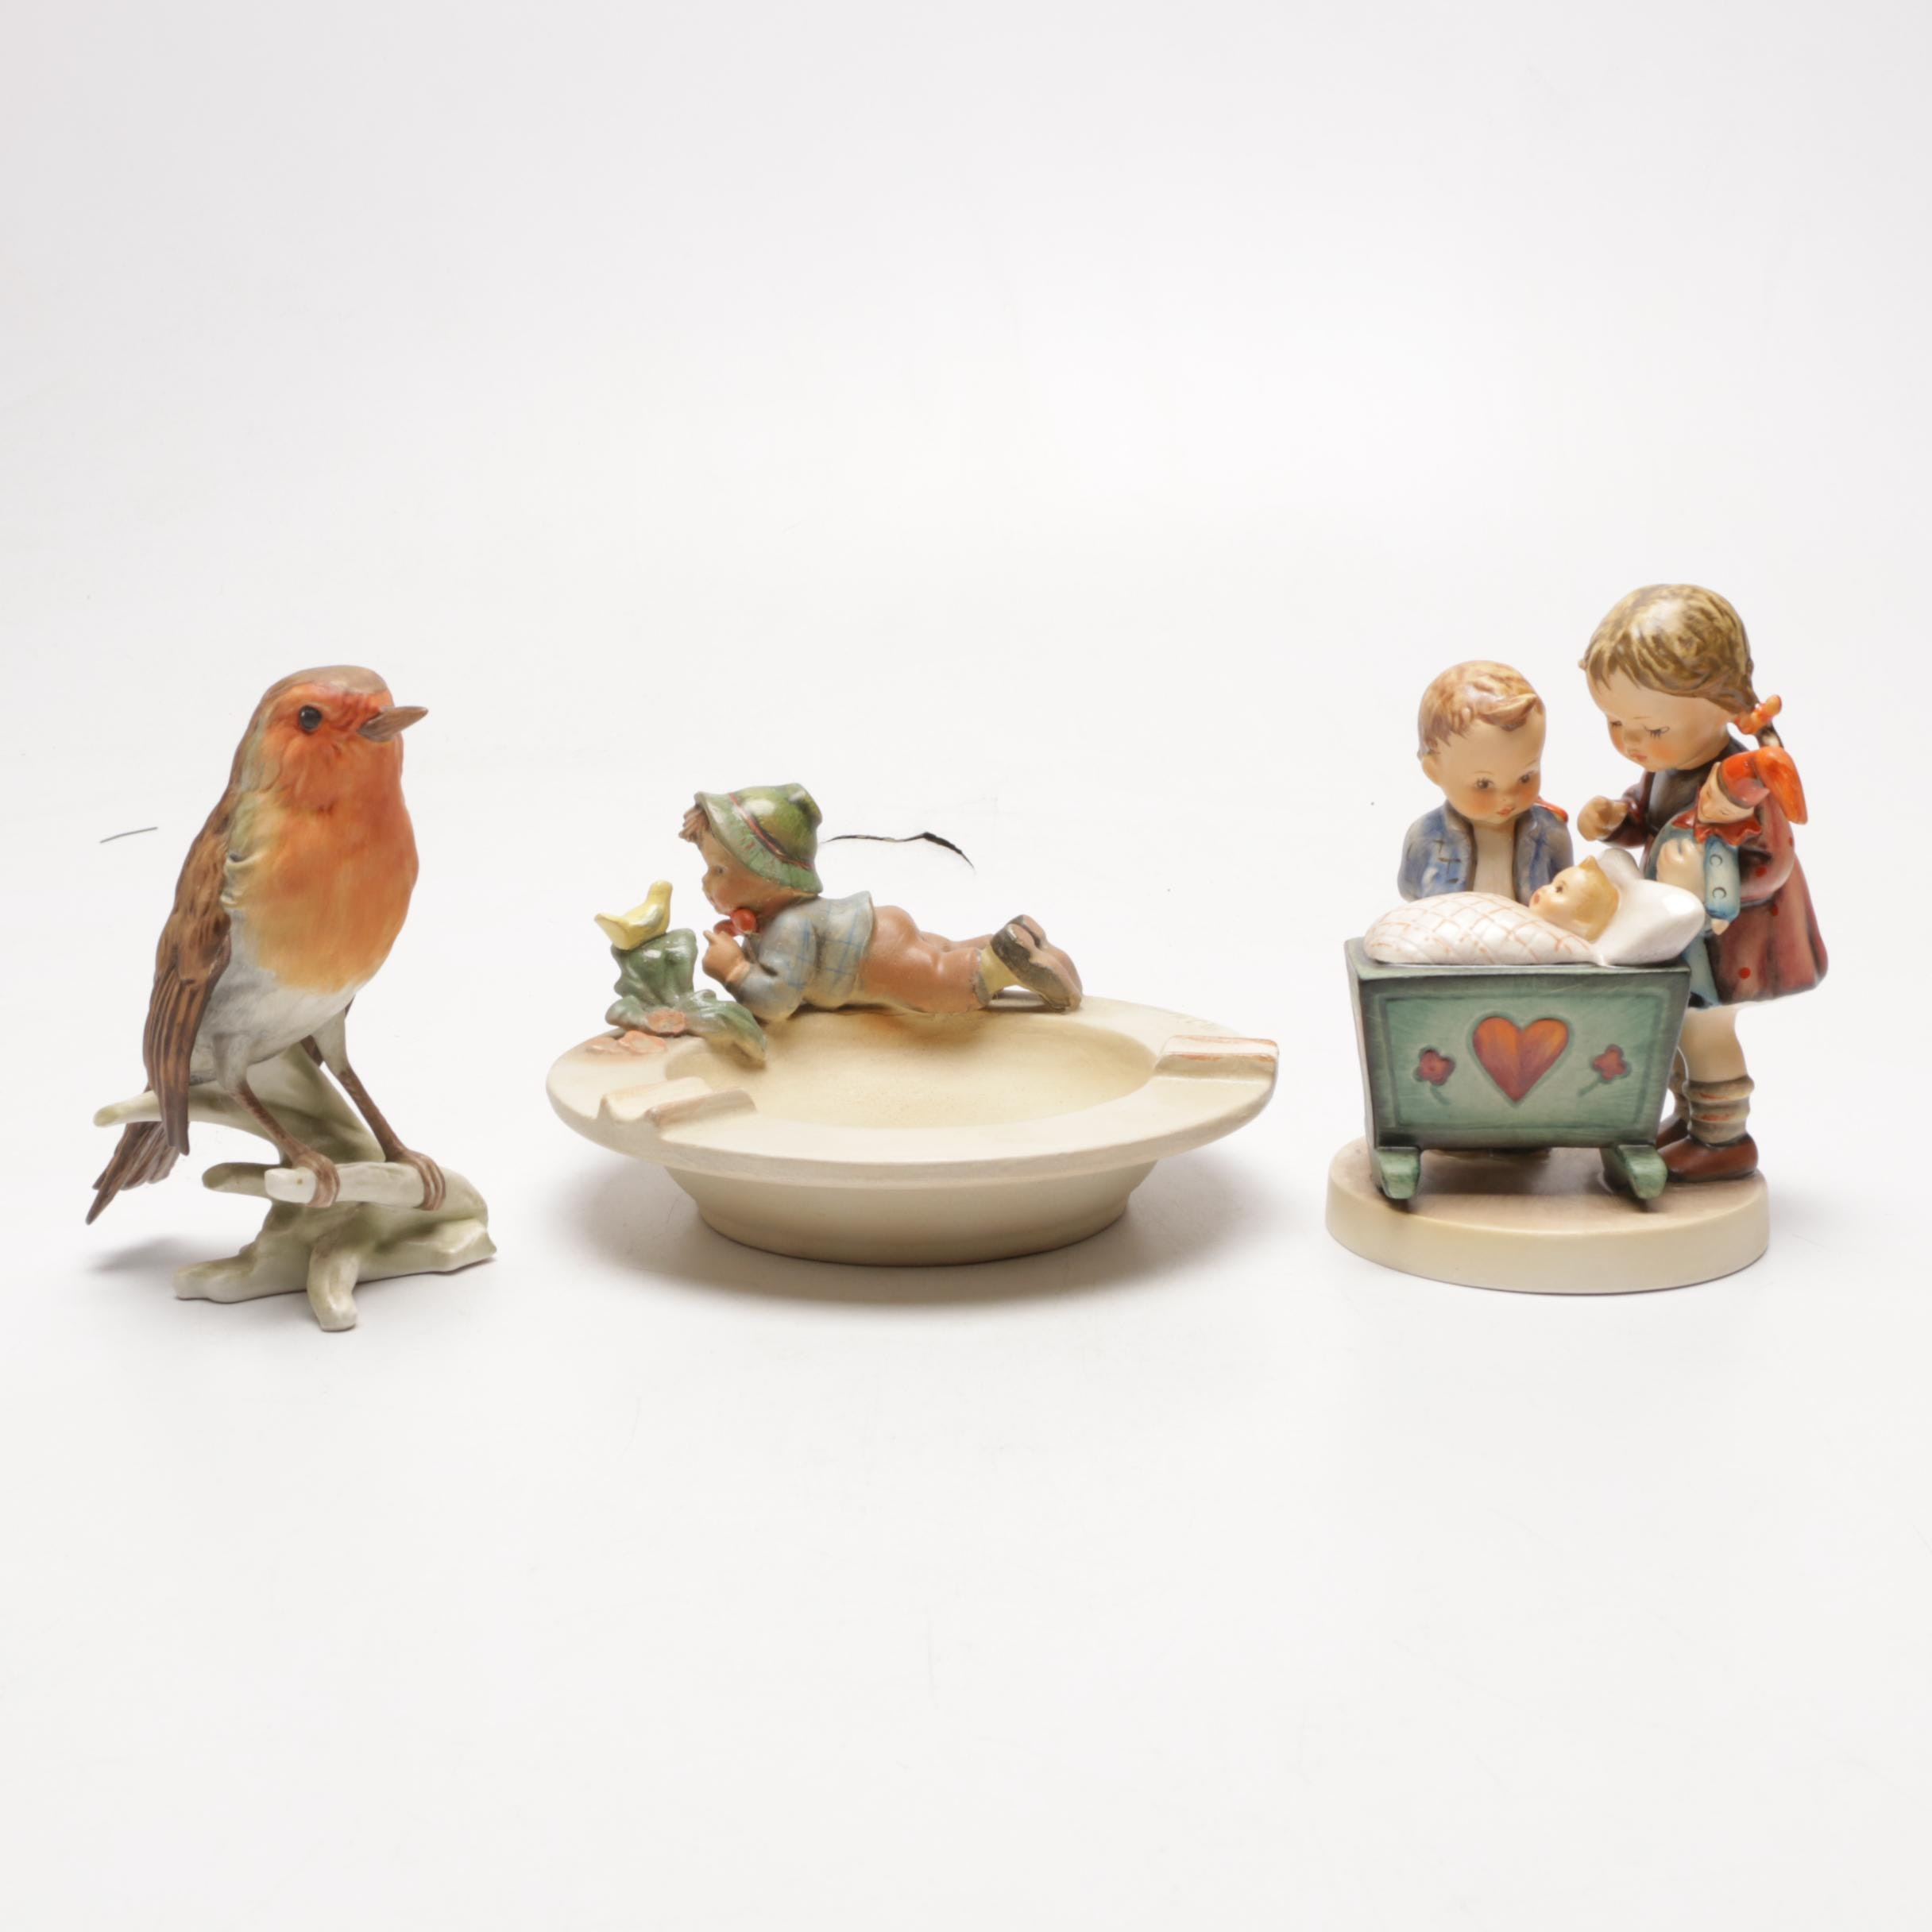 Hummel Figurines and Ash Receiver